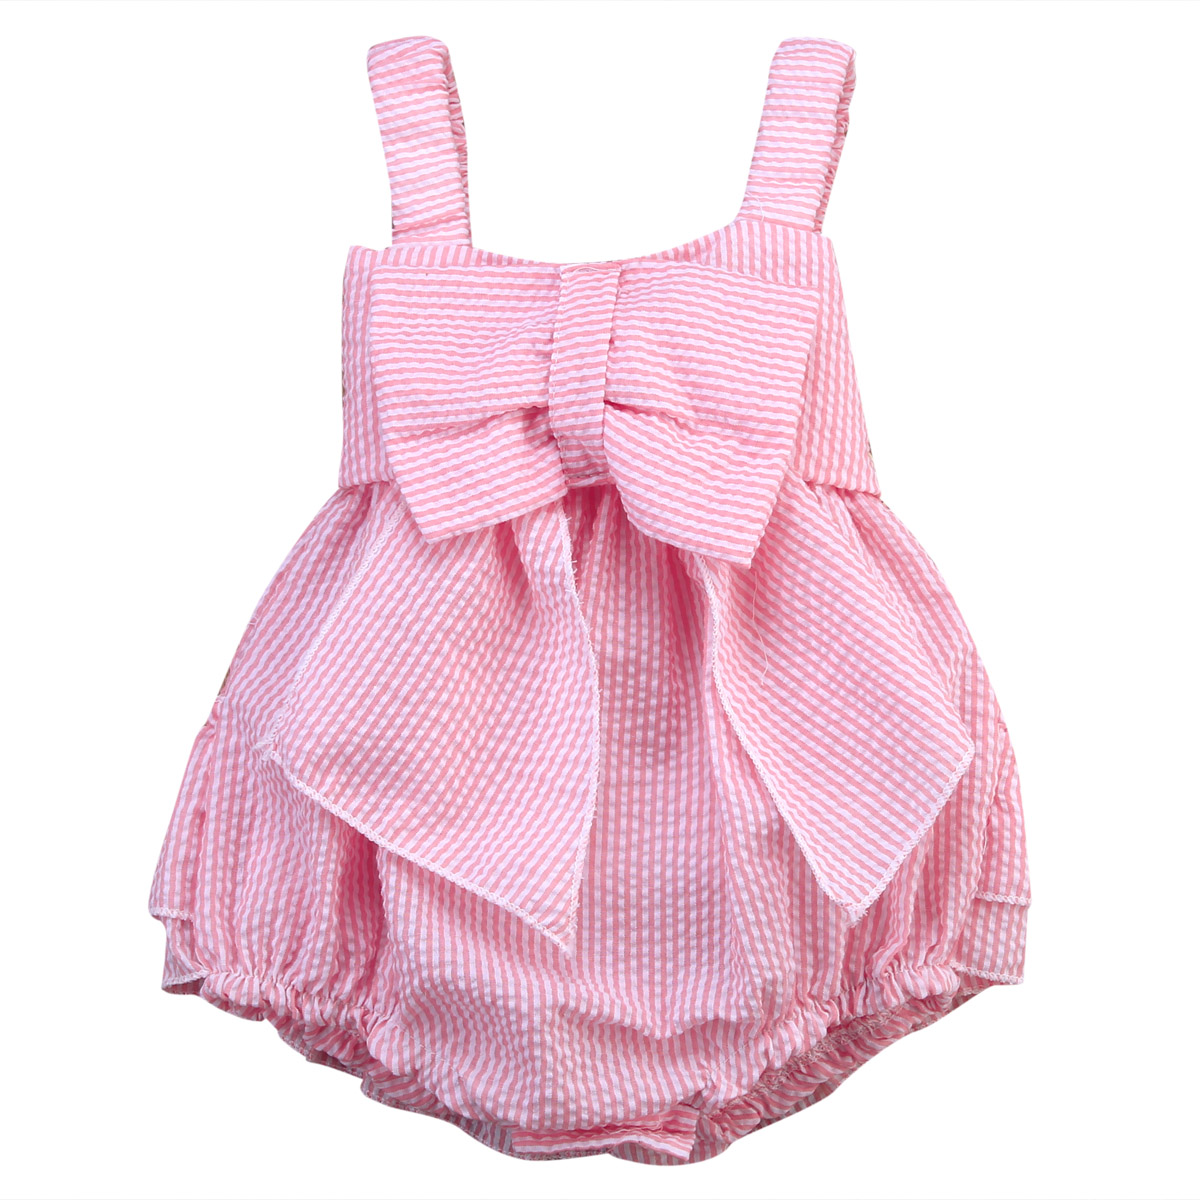 6e6cf665e Cute Pink Baby Grow Infant Girls Striped Romper Outfits Summer ...